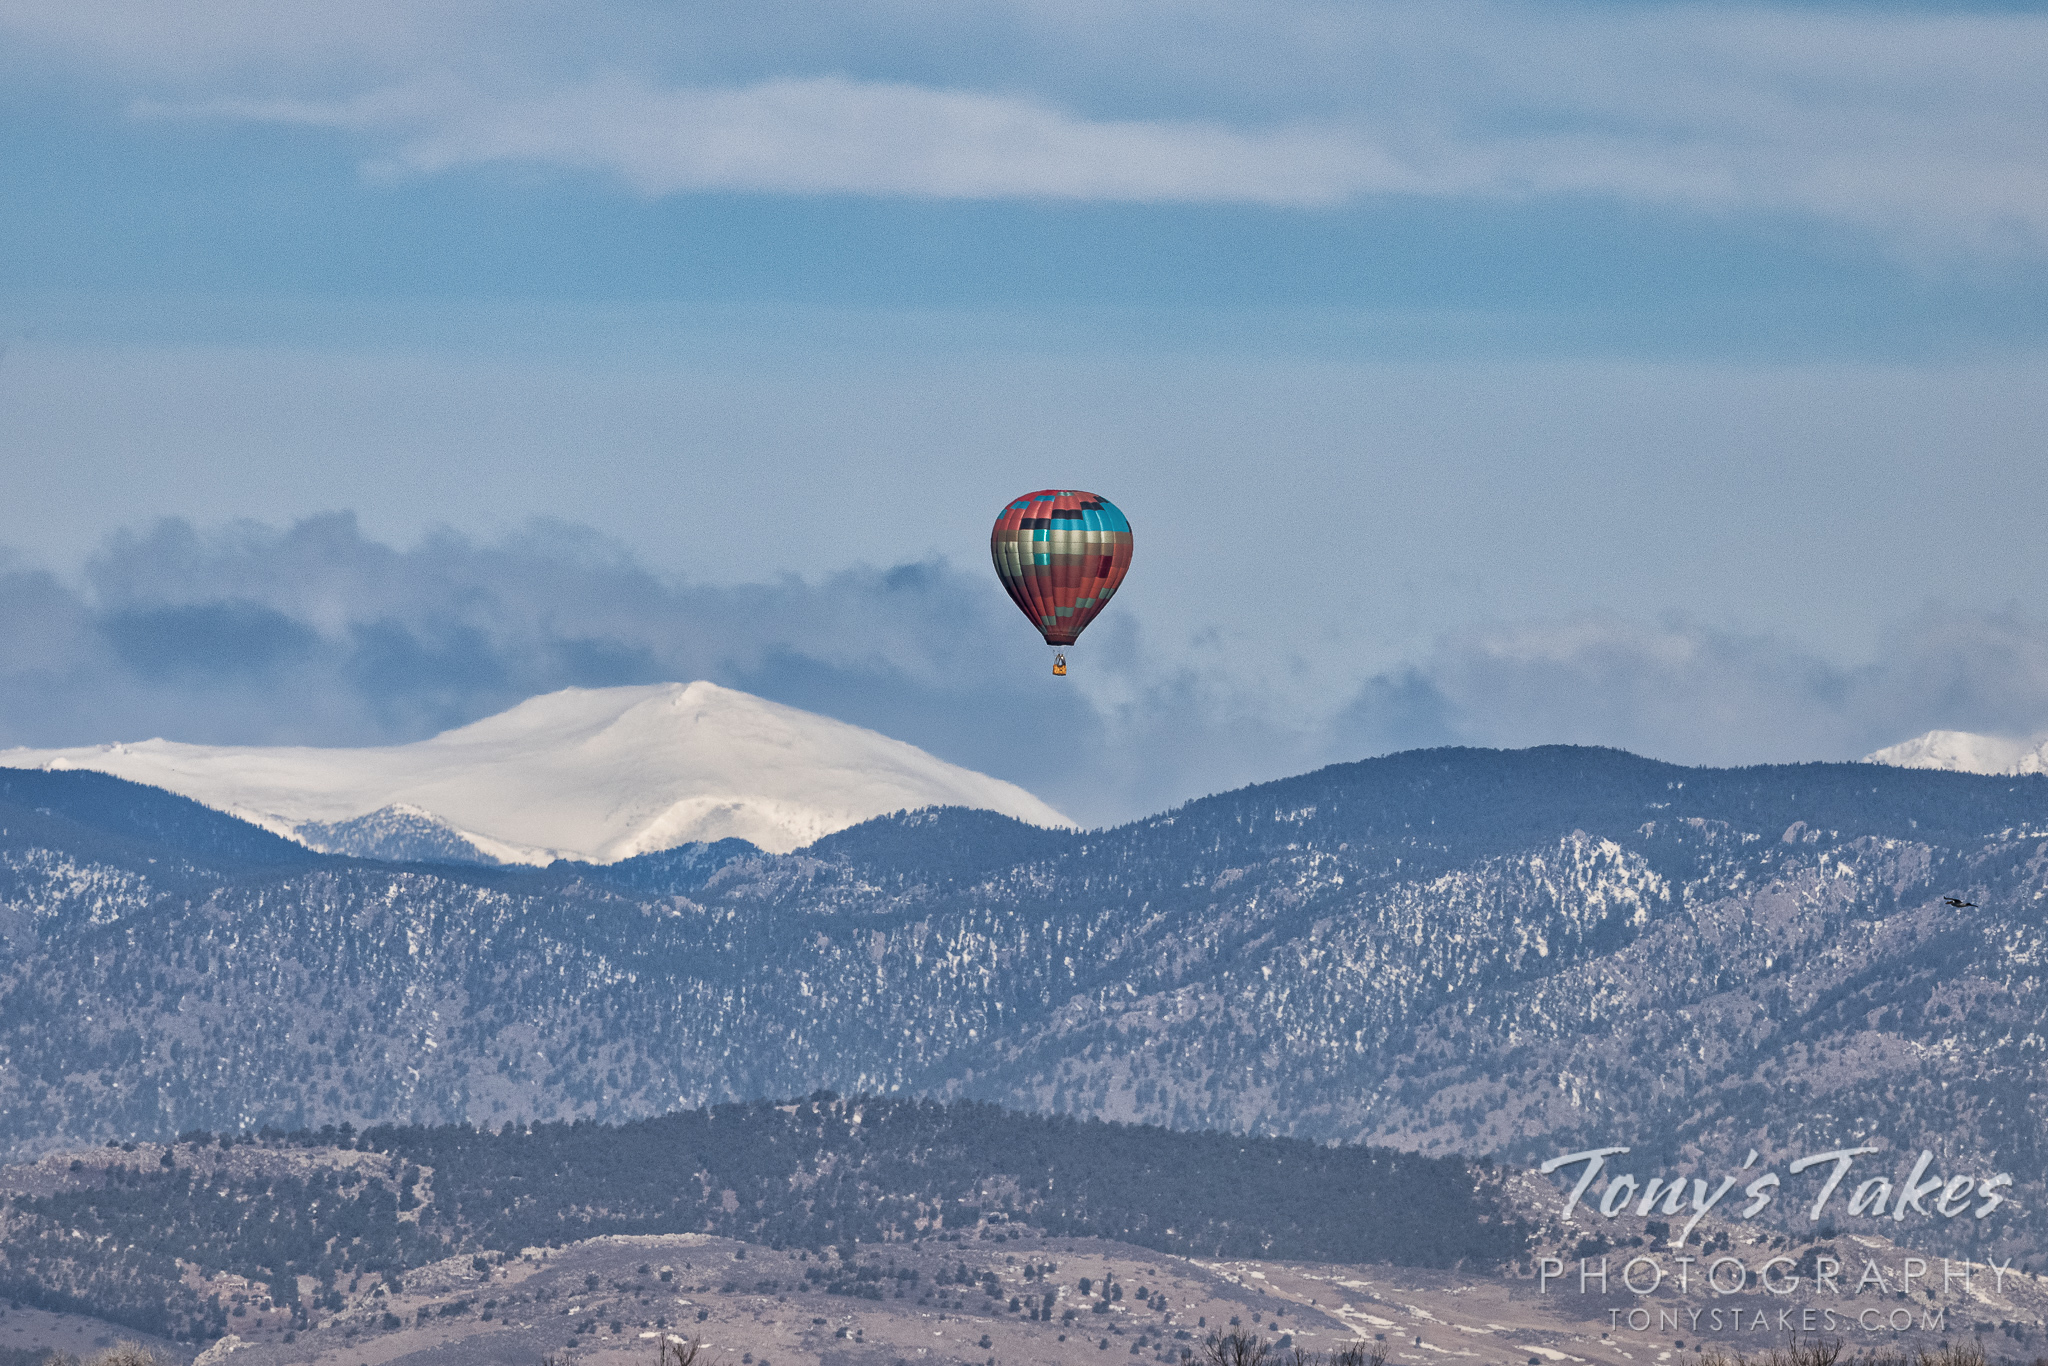 Rocky Mountain high in a hot air balloon